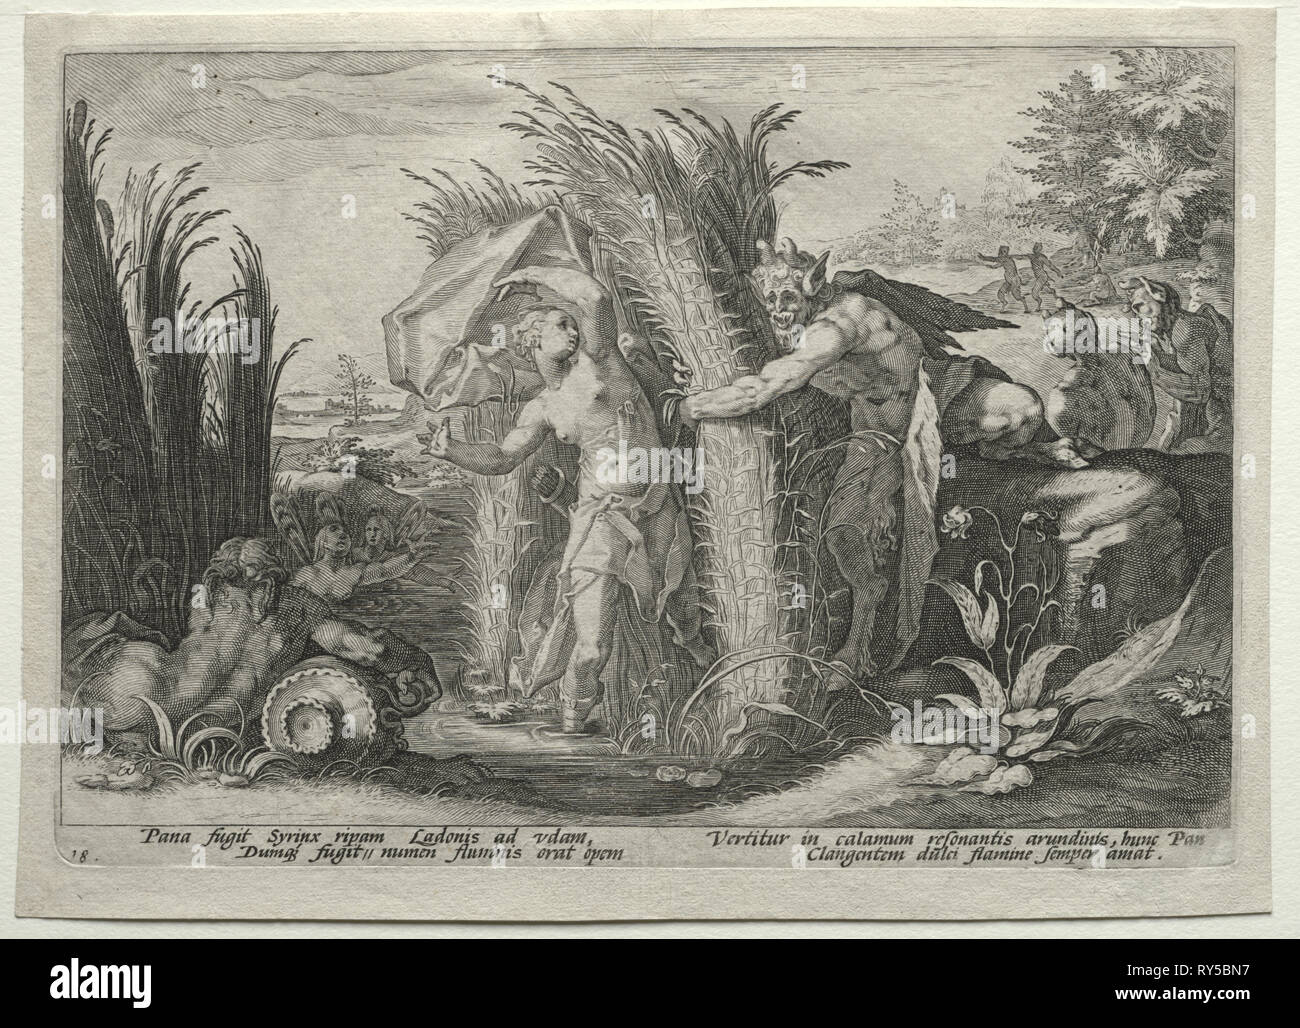 The Creations of the Four Elements (from Ovid's Metamorphoses): Pan Pursuing Syrinx, c. 1589. After Hendrick Goltzius (Dutch, 1558–1617). Engraving; sheet: 18.9 x 26.4 cm (7 7/16 x 10 3/8 in.); platemark: 17.2 x 24.9 cm (6 3/4 x 9 13/16 in - Stock Image